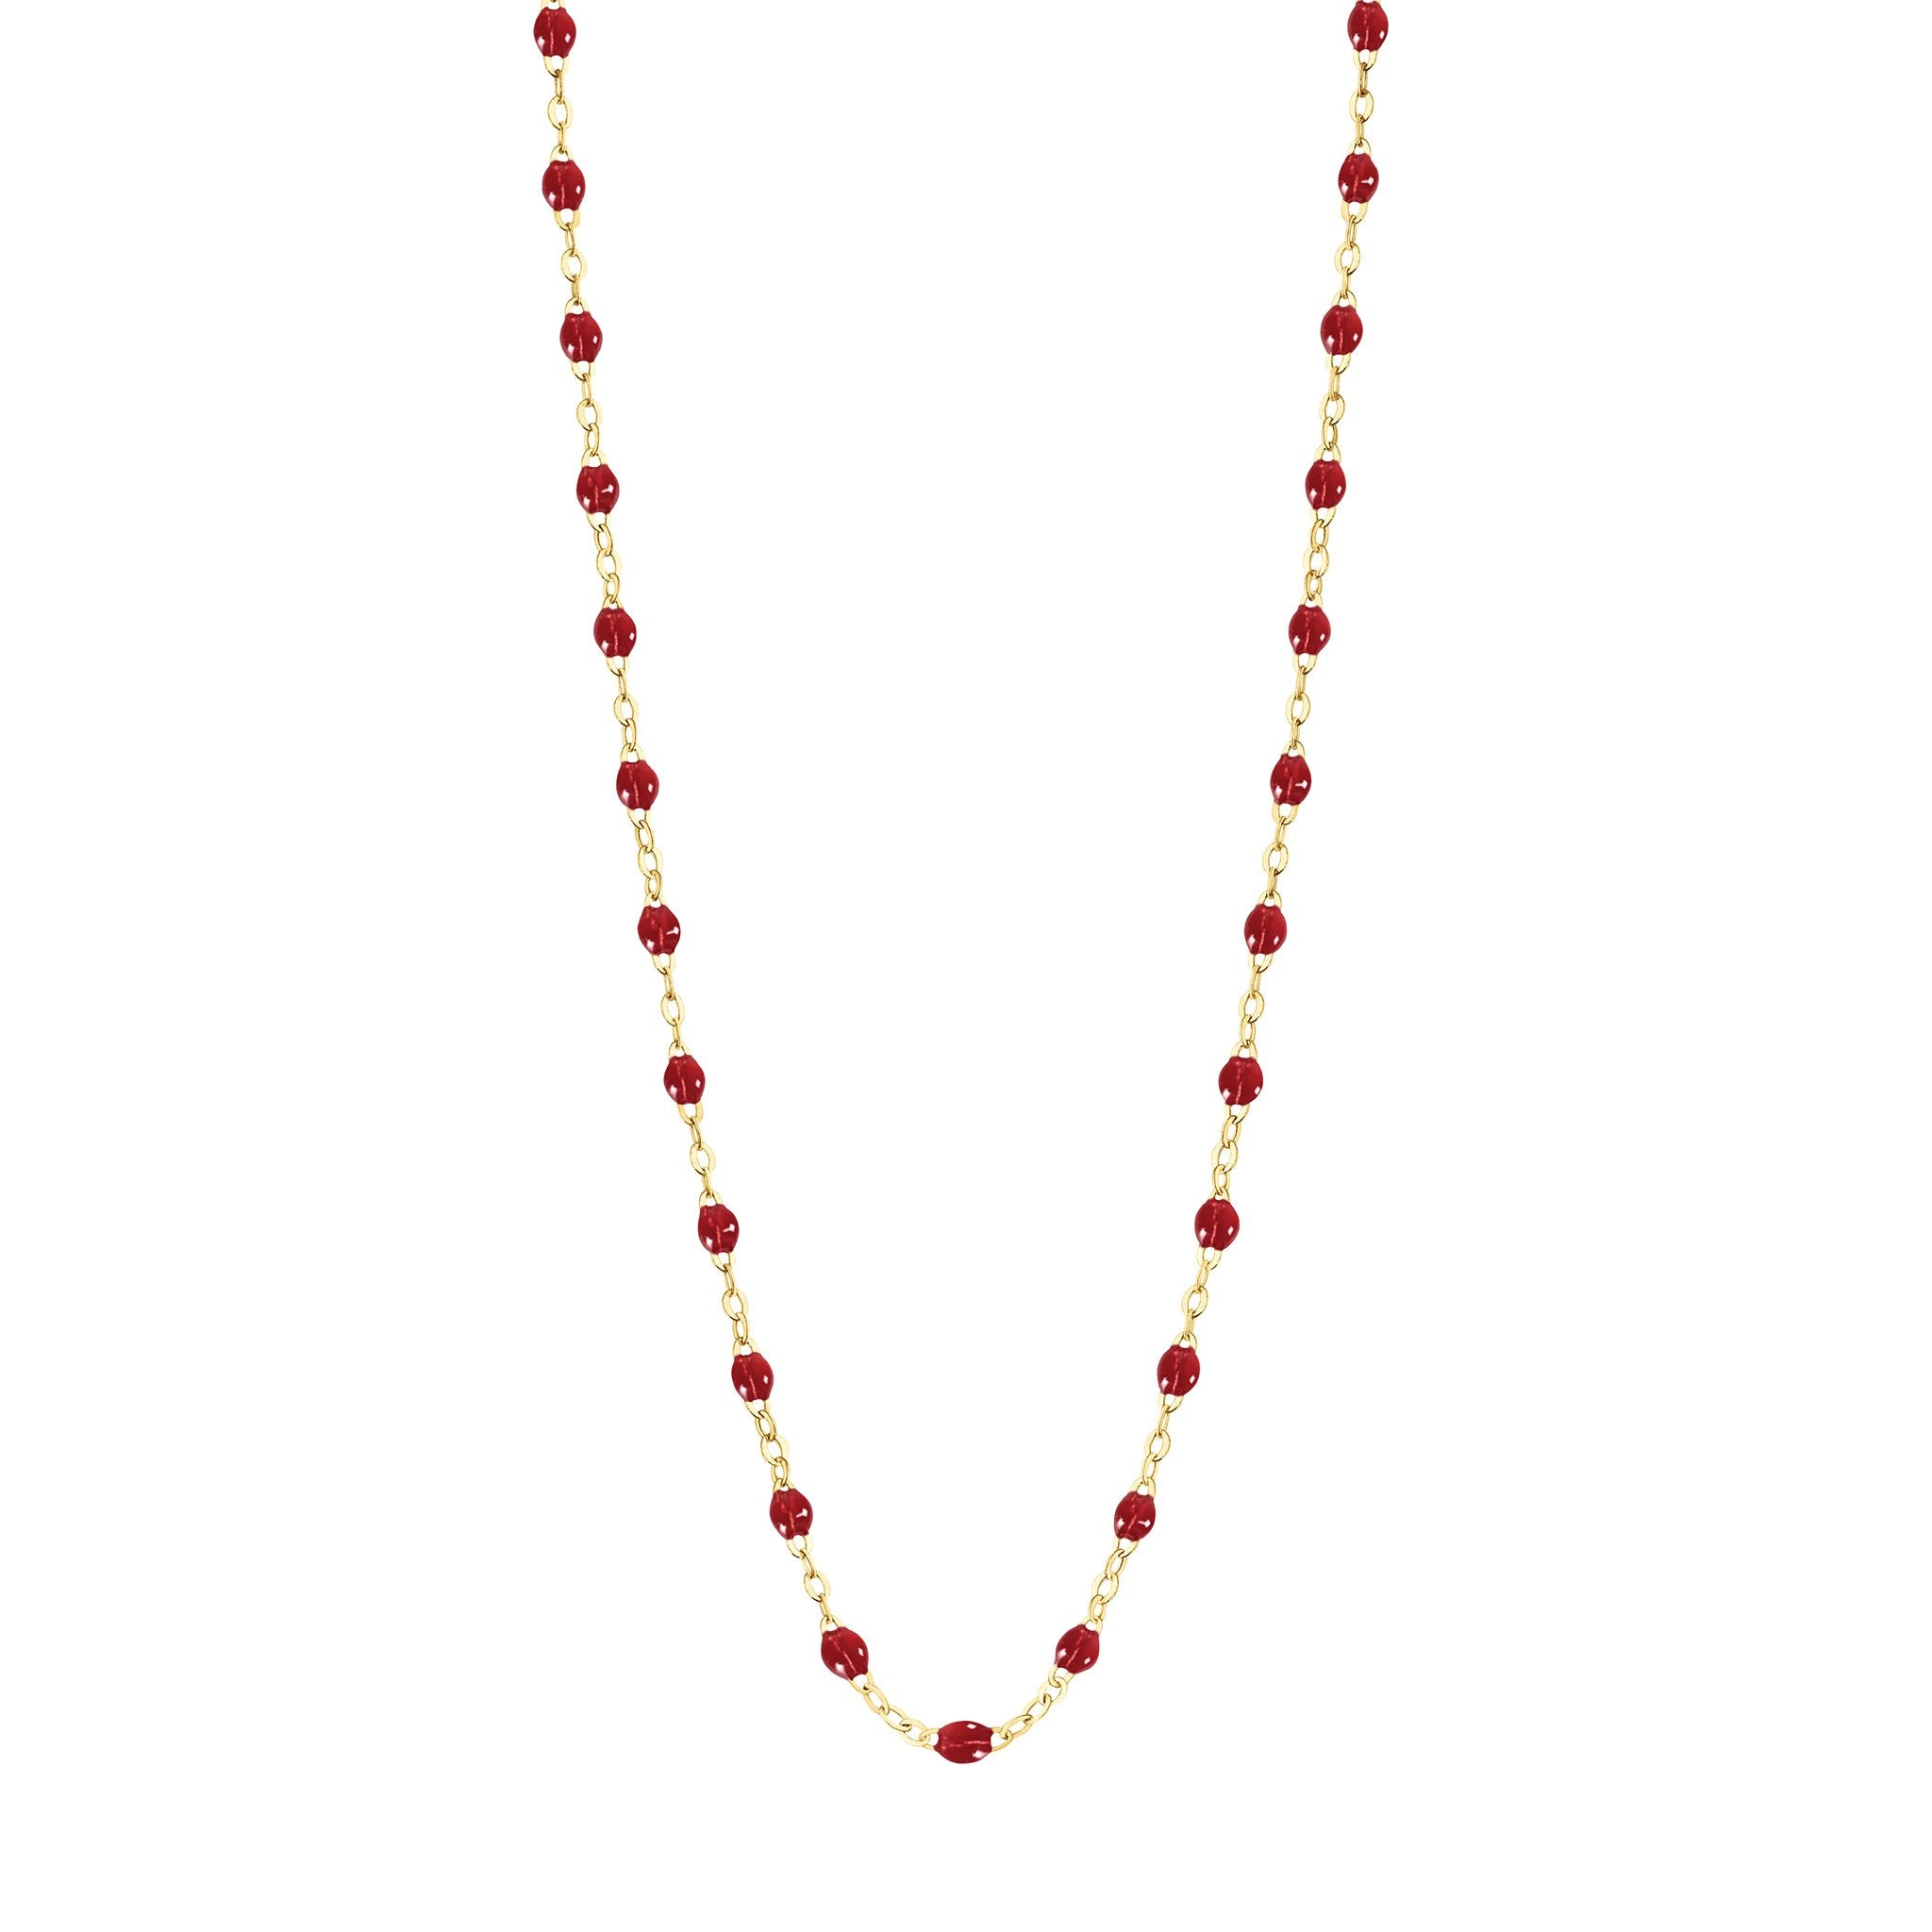 Gigi Clozeau - Classic Gigi Cherry necklace, Yellow Gold, 17.7